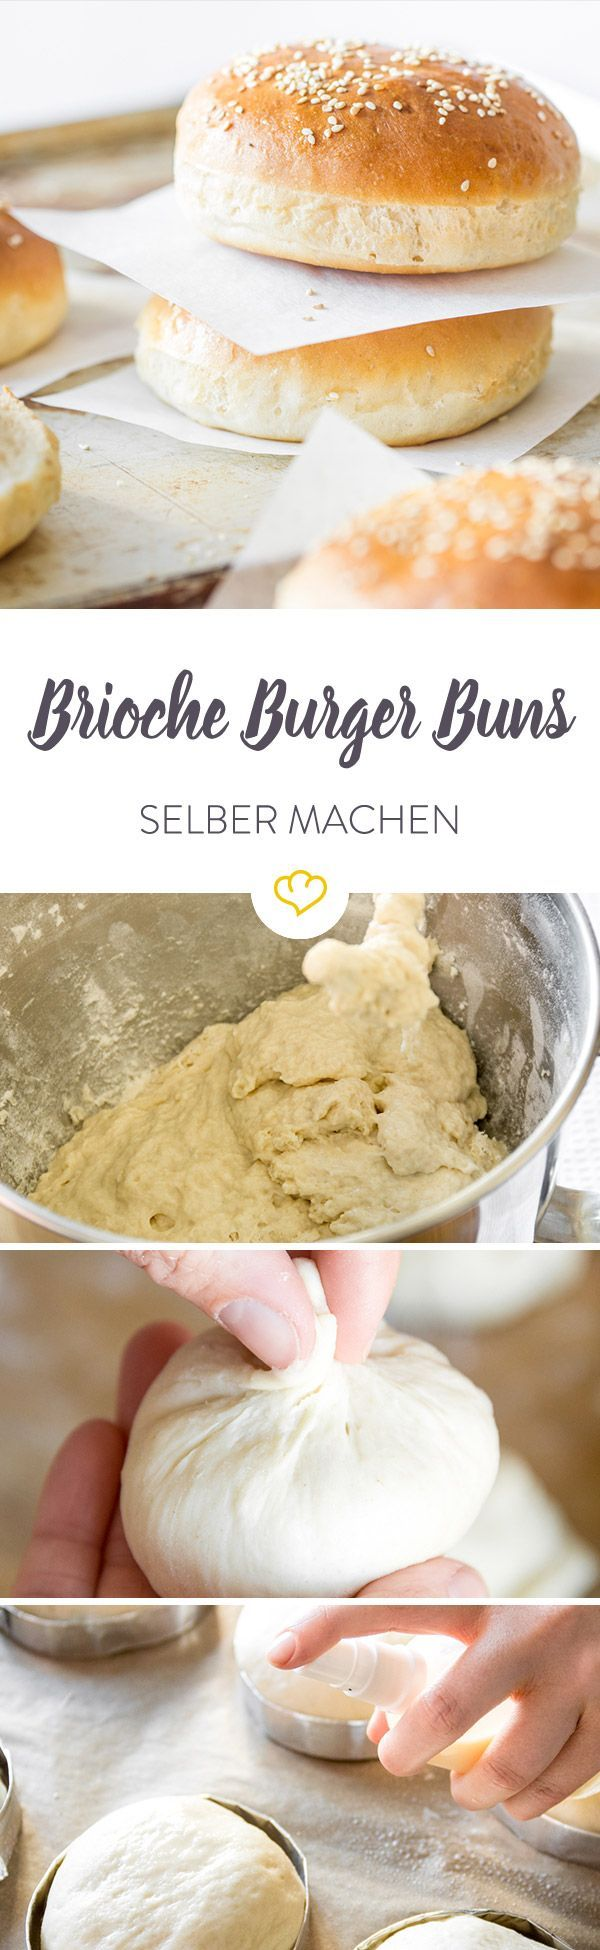 brioche burger buns recipe all things bread pinterest. Black Bedroom Furniture Sets. Home Design Ideas